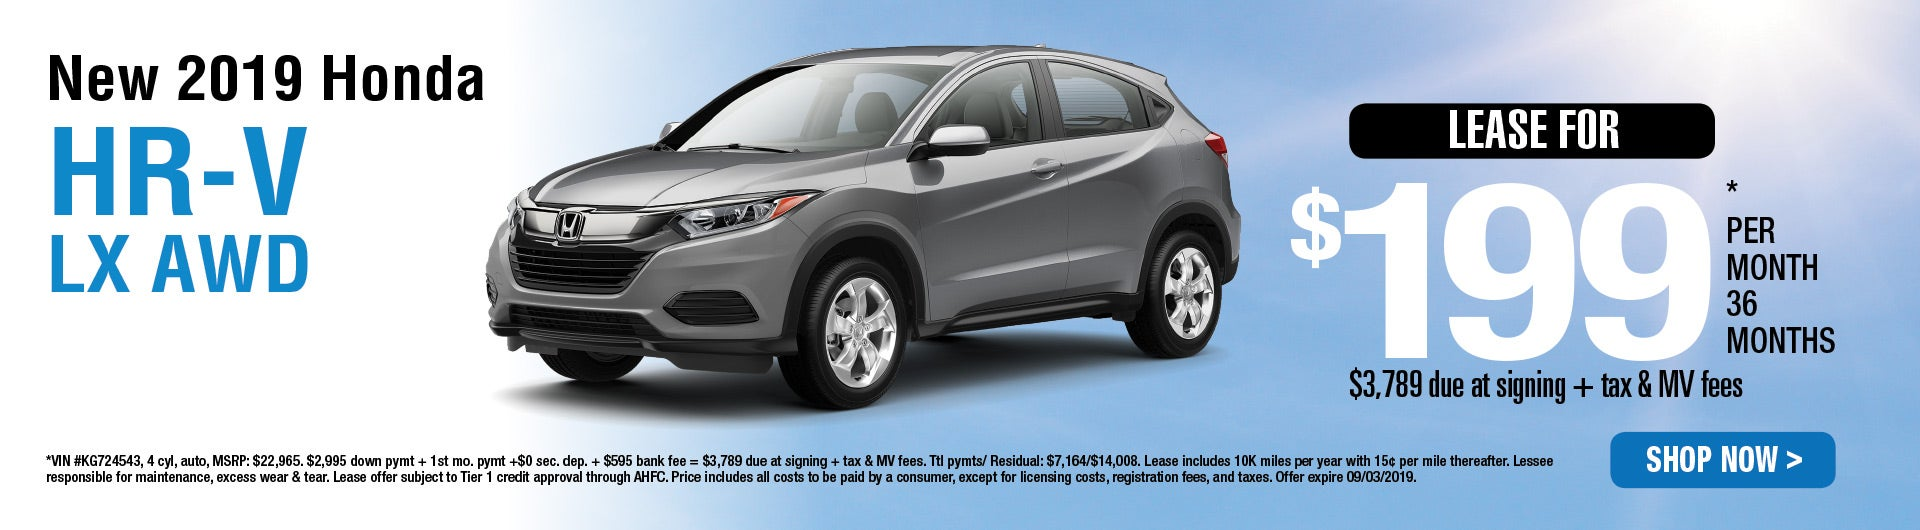 Honda Dealers Nj >> 2019 Honda Hr V Honda Hr V In Clinton Nj Clinton Honda